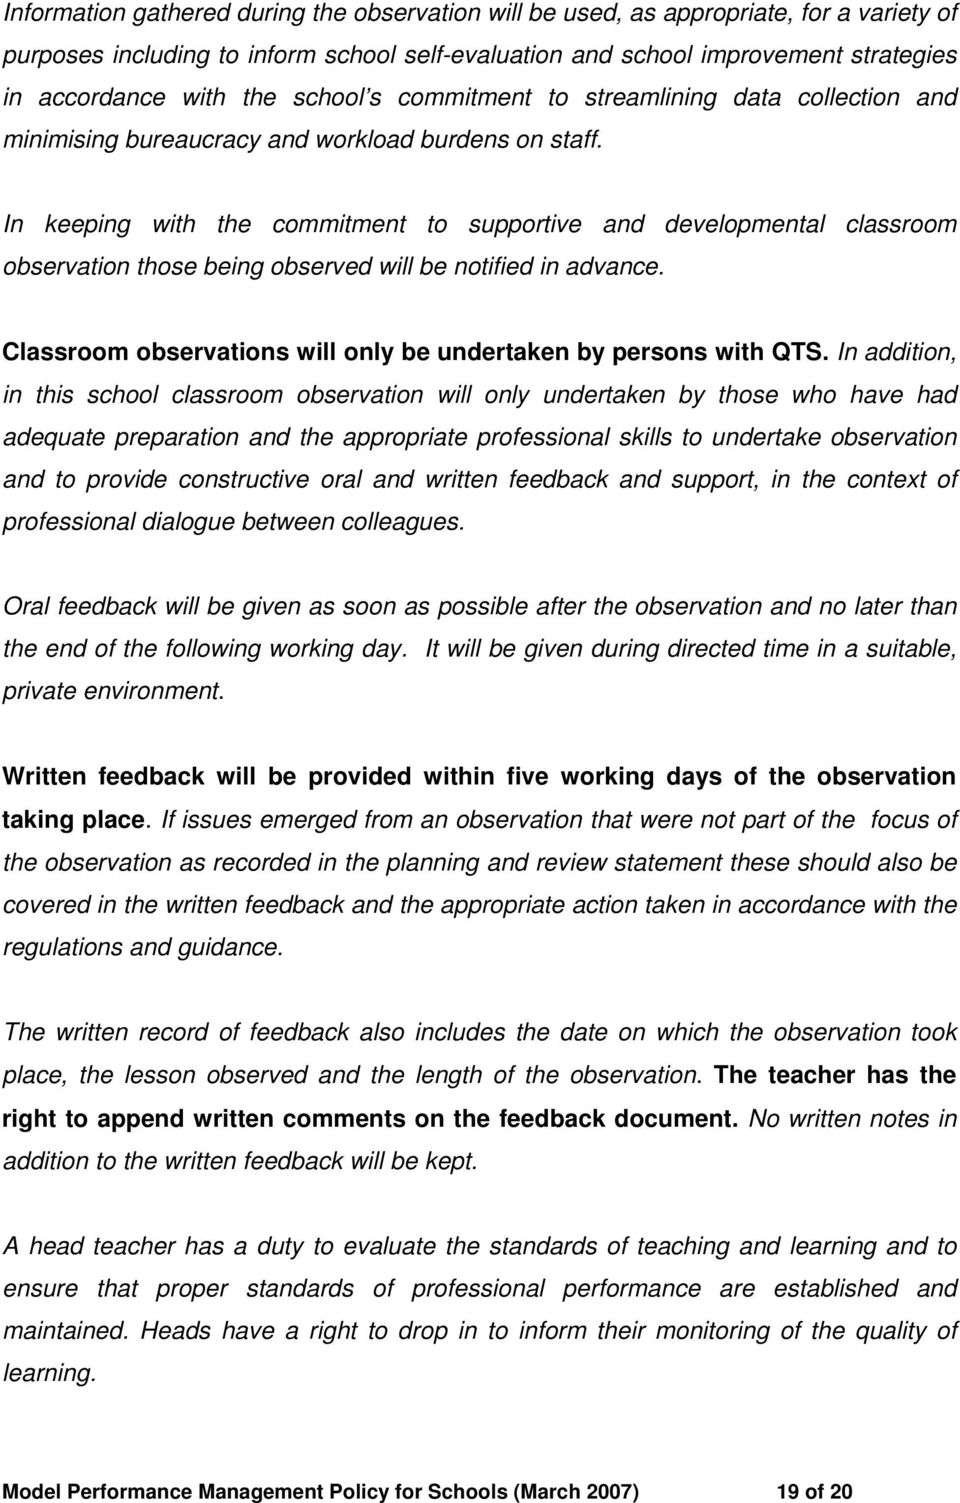 In keeping with the commitment to supportive and developmental classroom observation those being observed will be notified in advance.